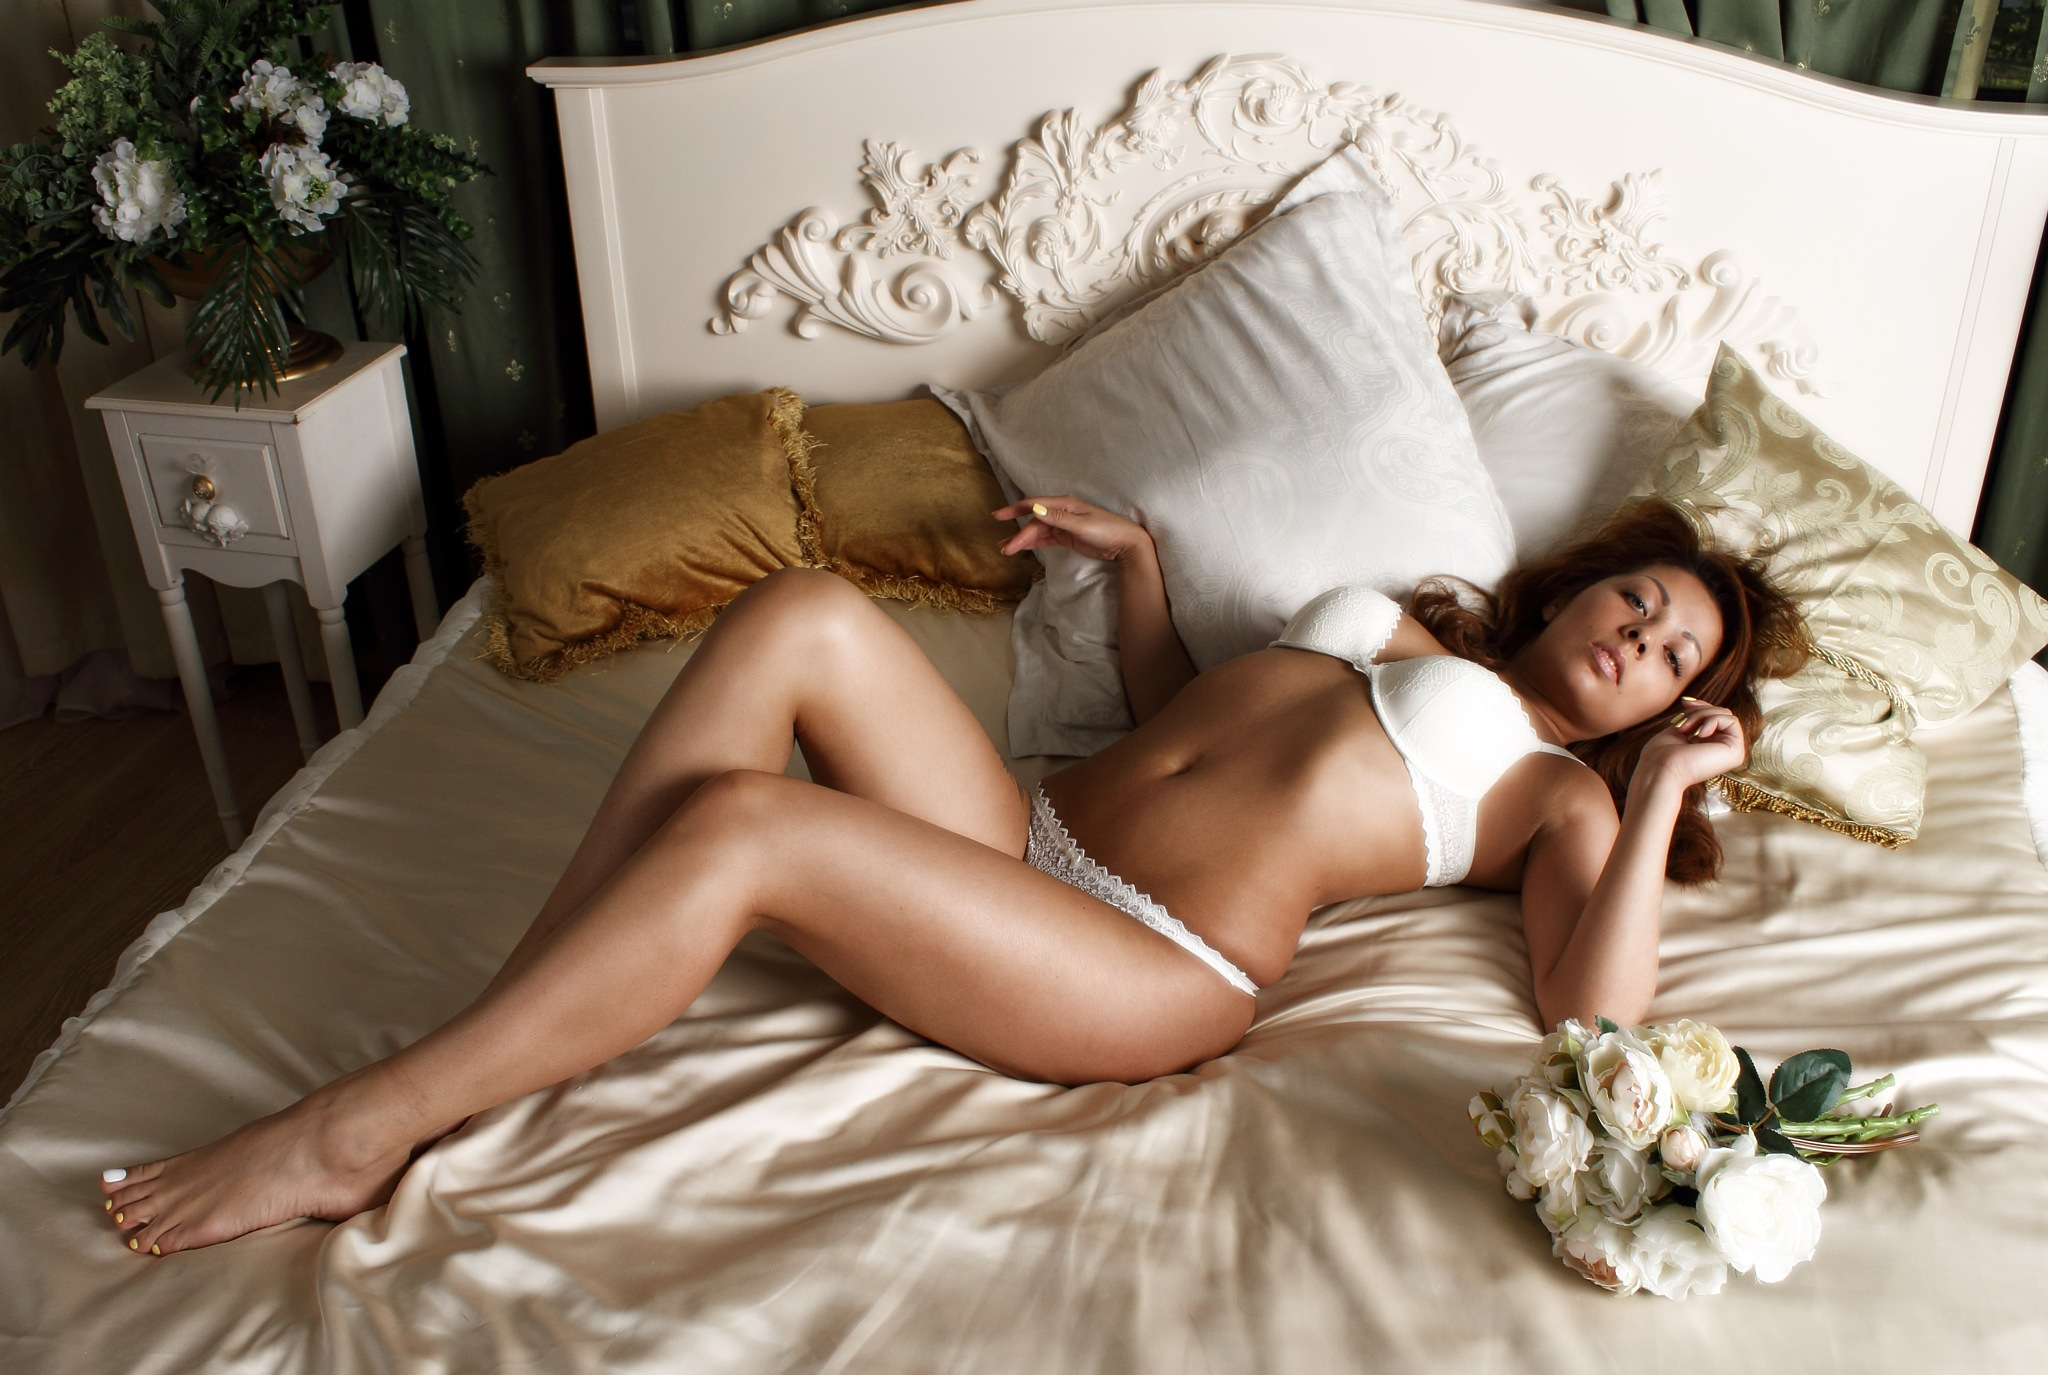 Girl in bra and panties with flowers on a bed by Lightspear